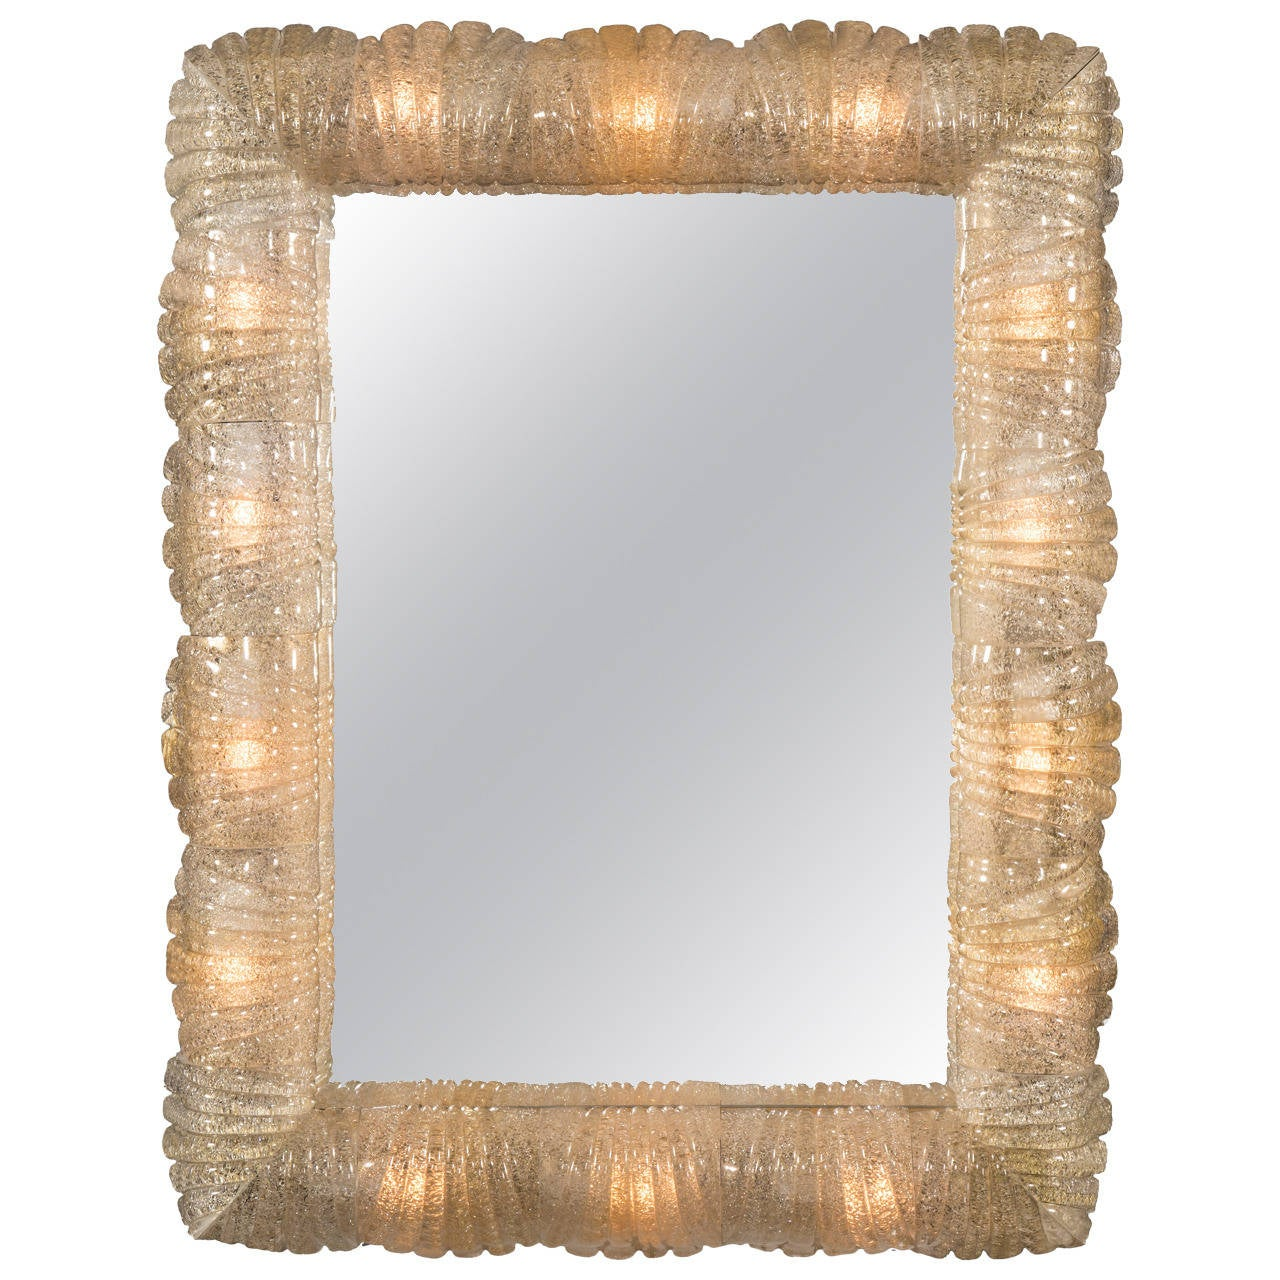 Barovier and Toso, a Murano Illuminated Rugiadoso Glass Mirror